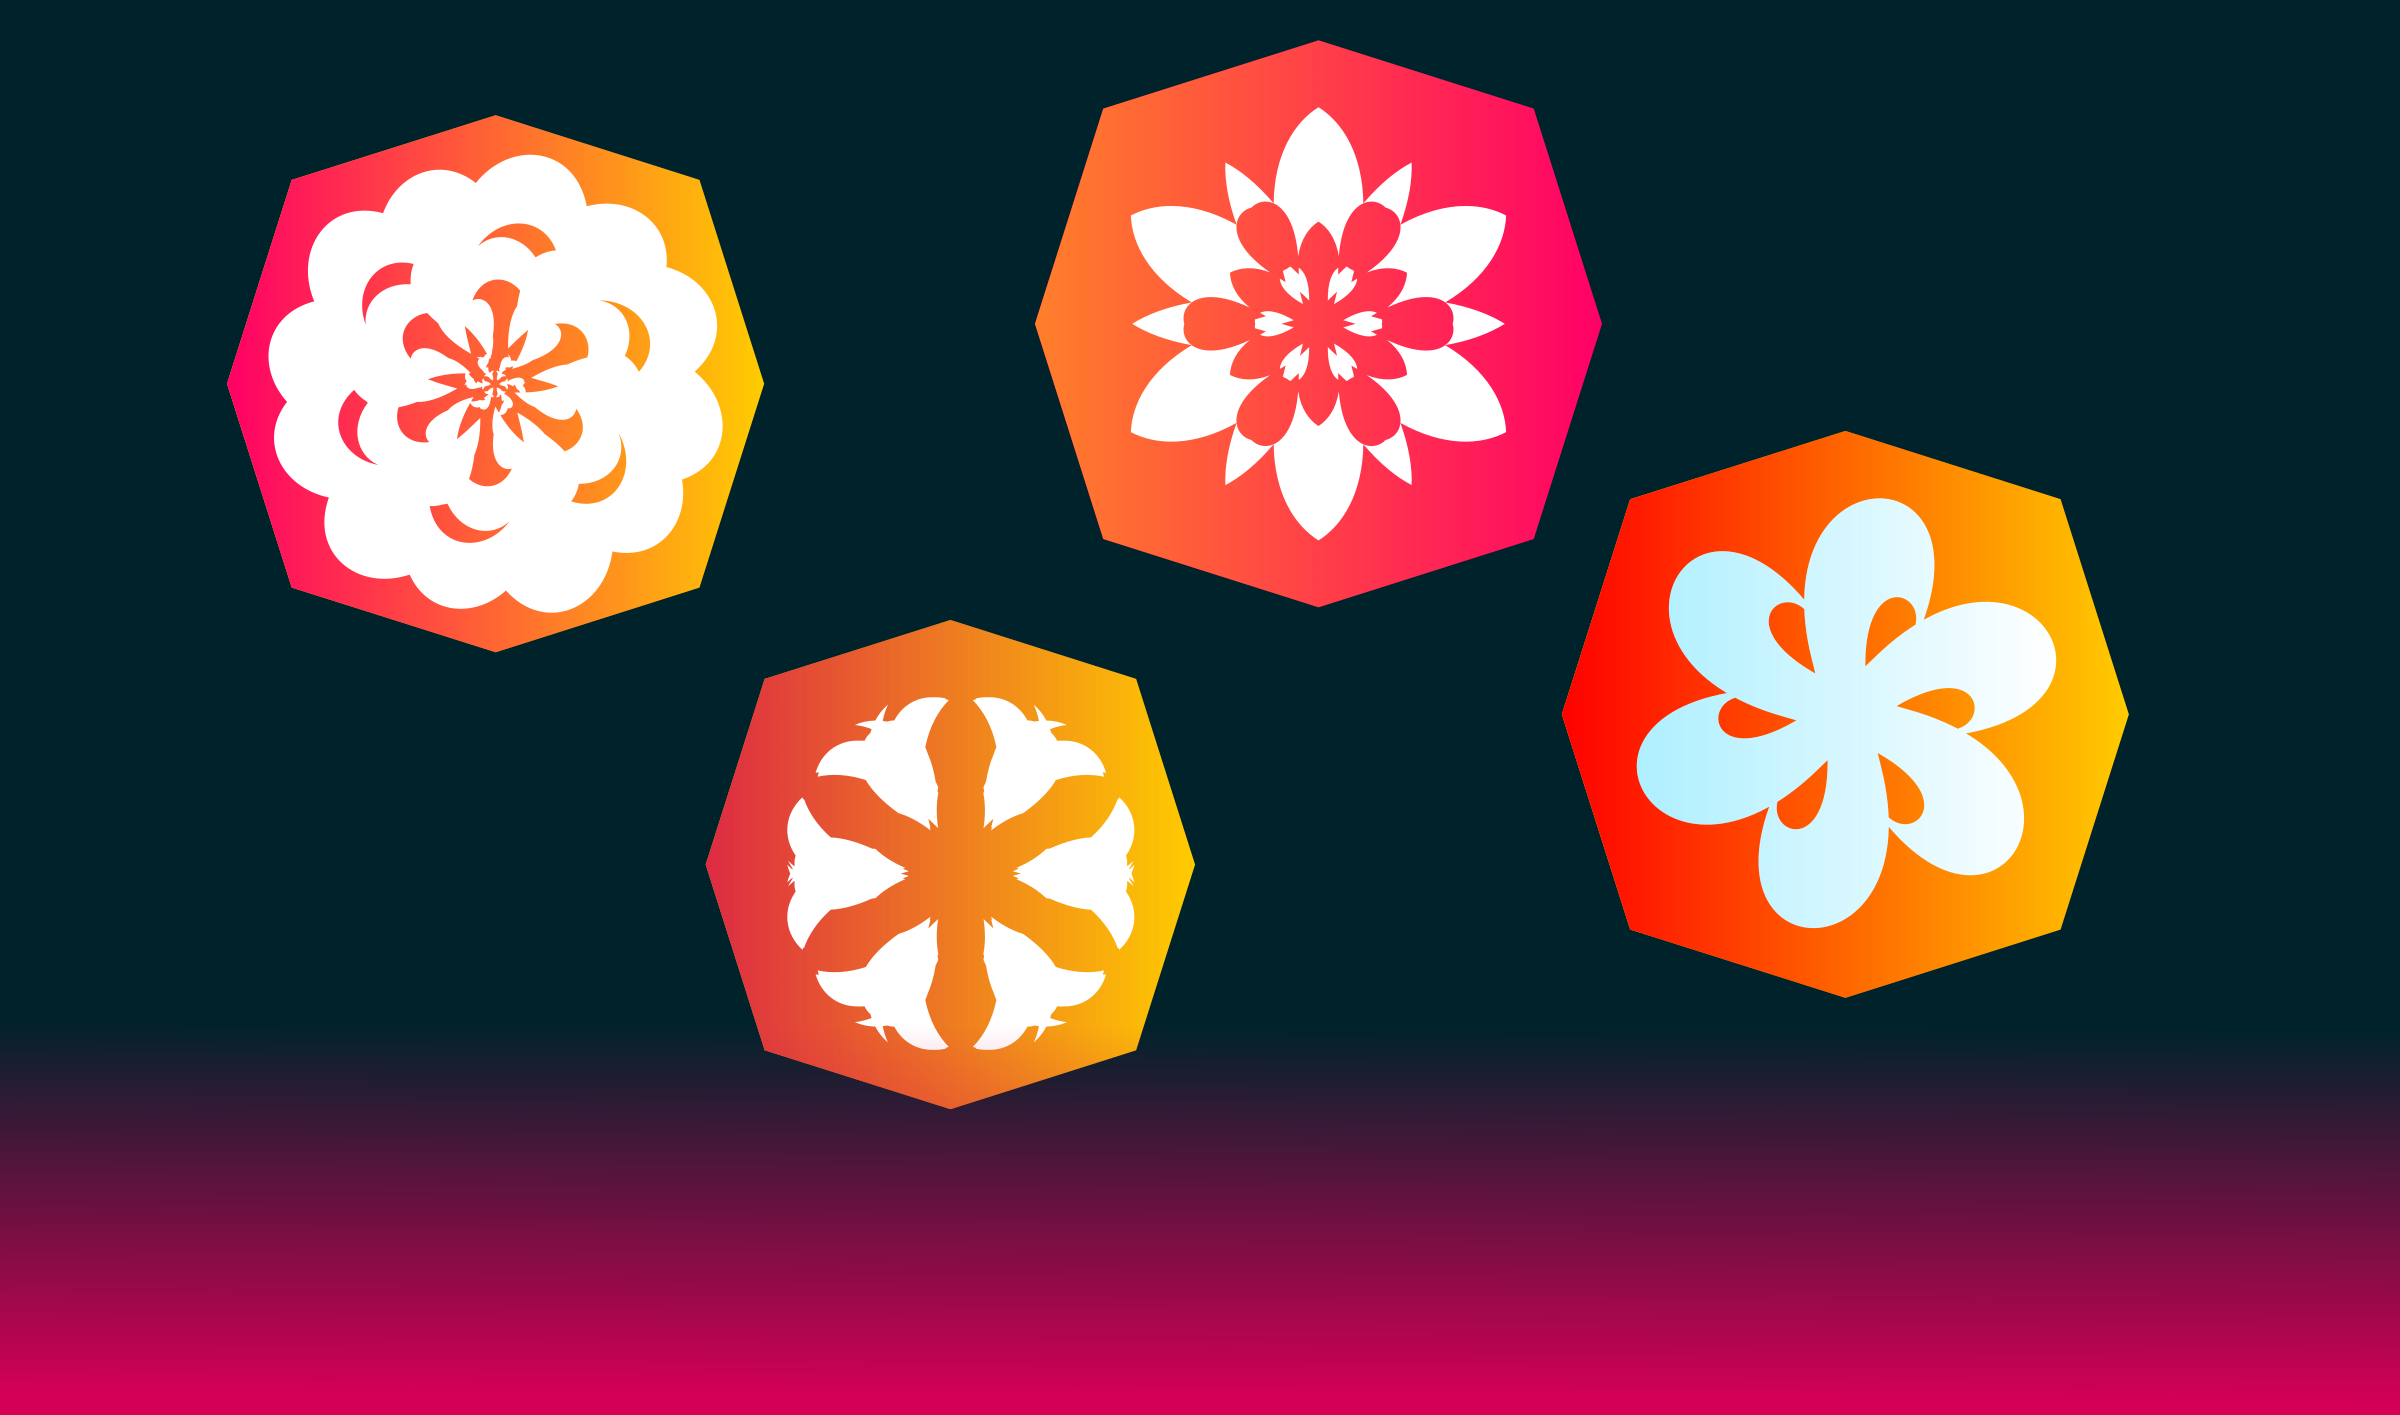 flowers icons by QMC.media